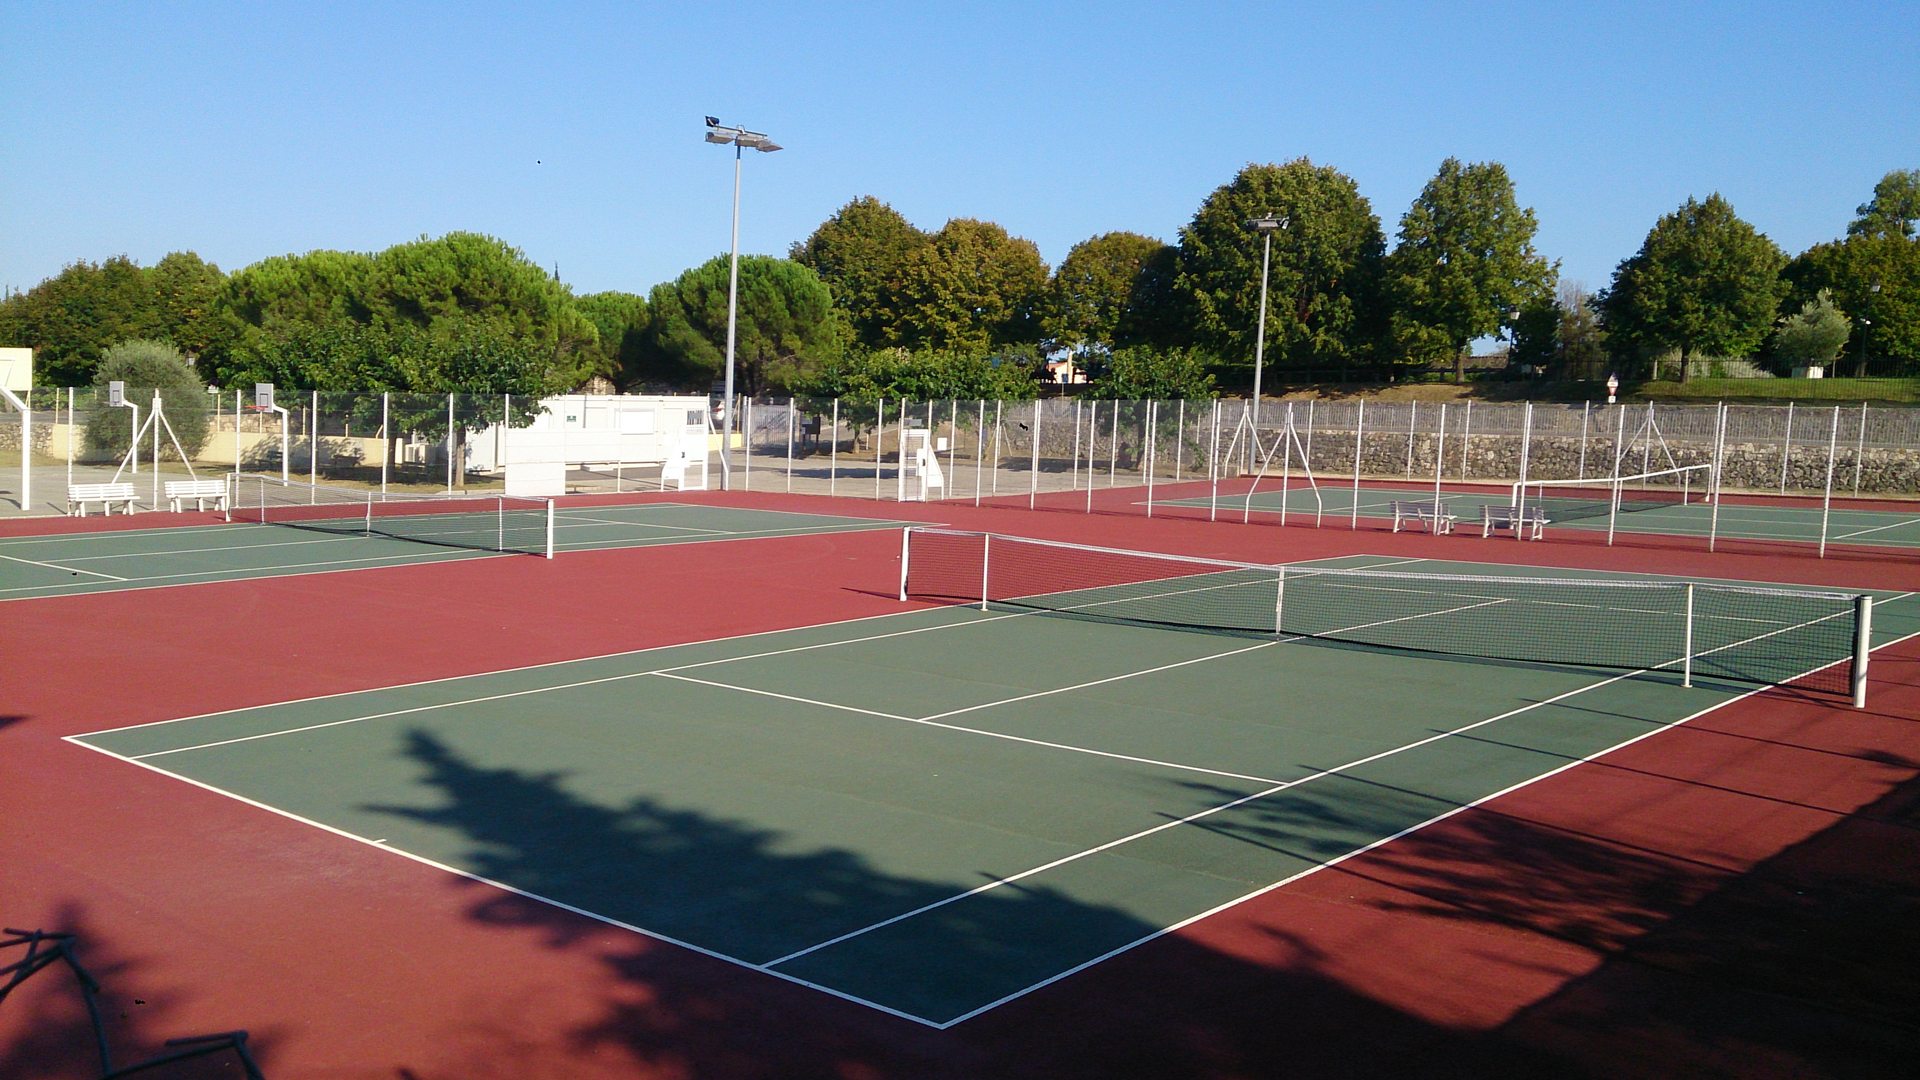 Club de tennis municipal chateauneuf grasse 06 tennis for Club de tennis interieur saguenay